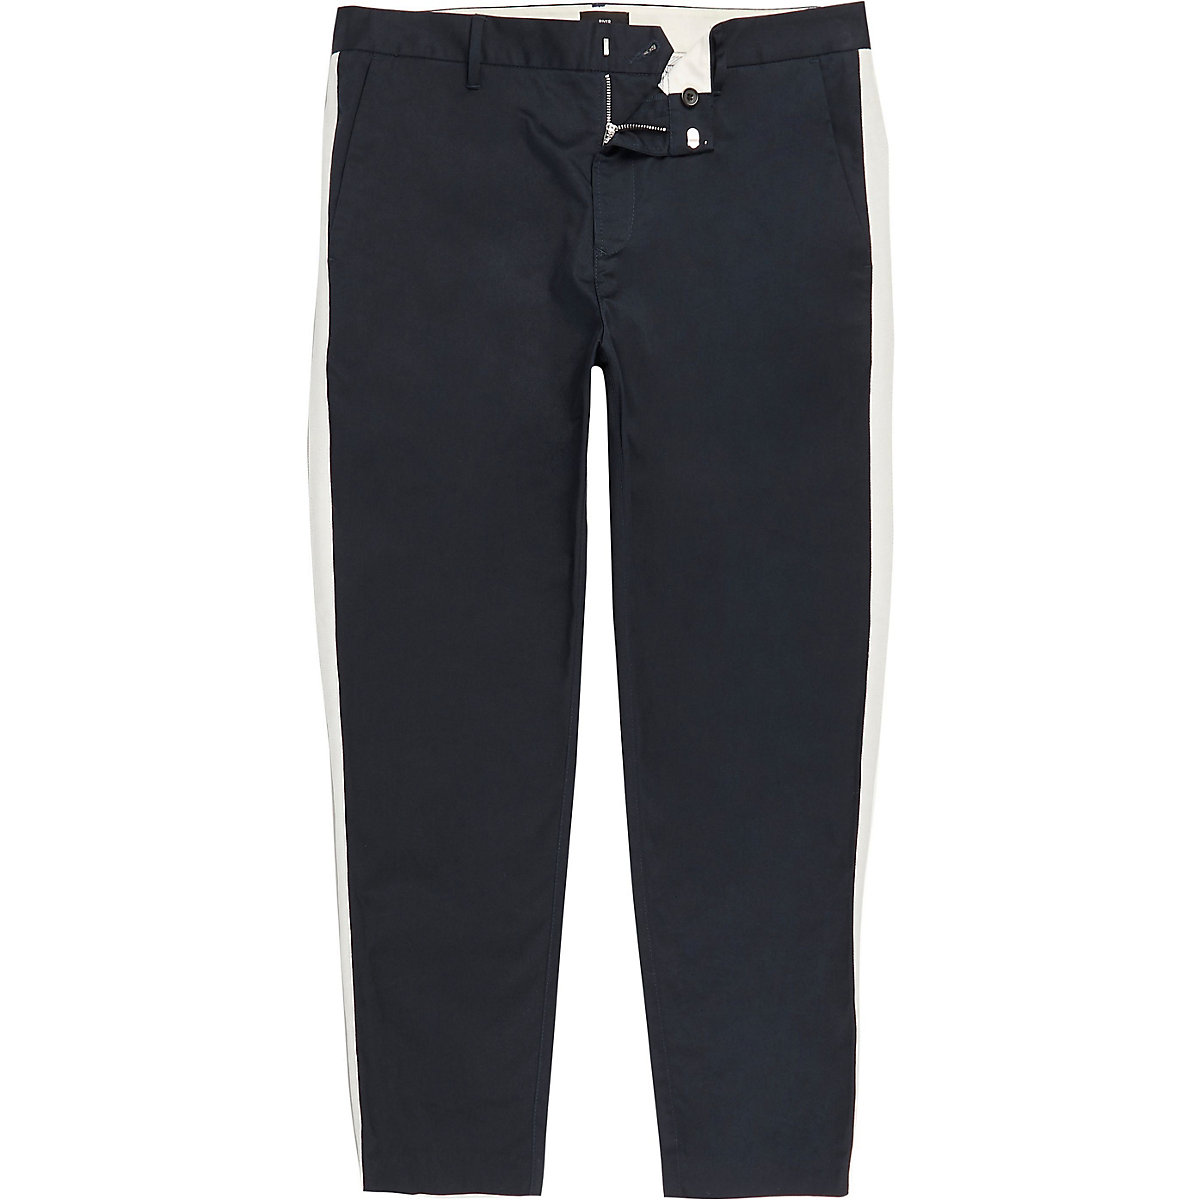 Big and Tall navy skinny taped trousers